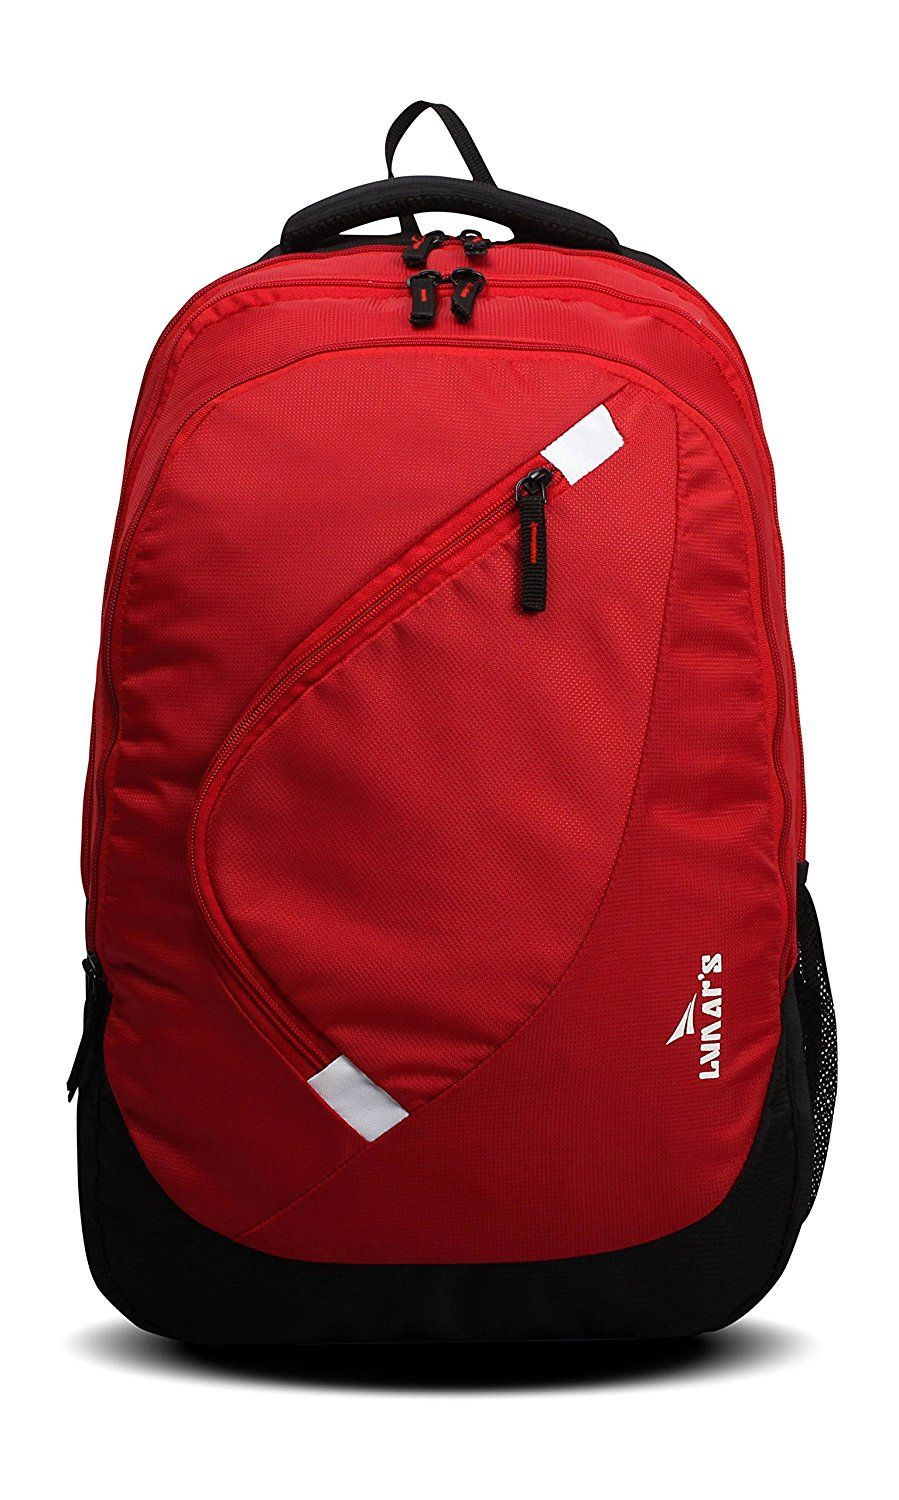 92805eb79e Lunar s Comet 35L Lightweight Casual Backpack (Red)  Amazon.in  Bags ...